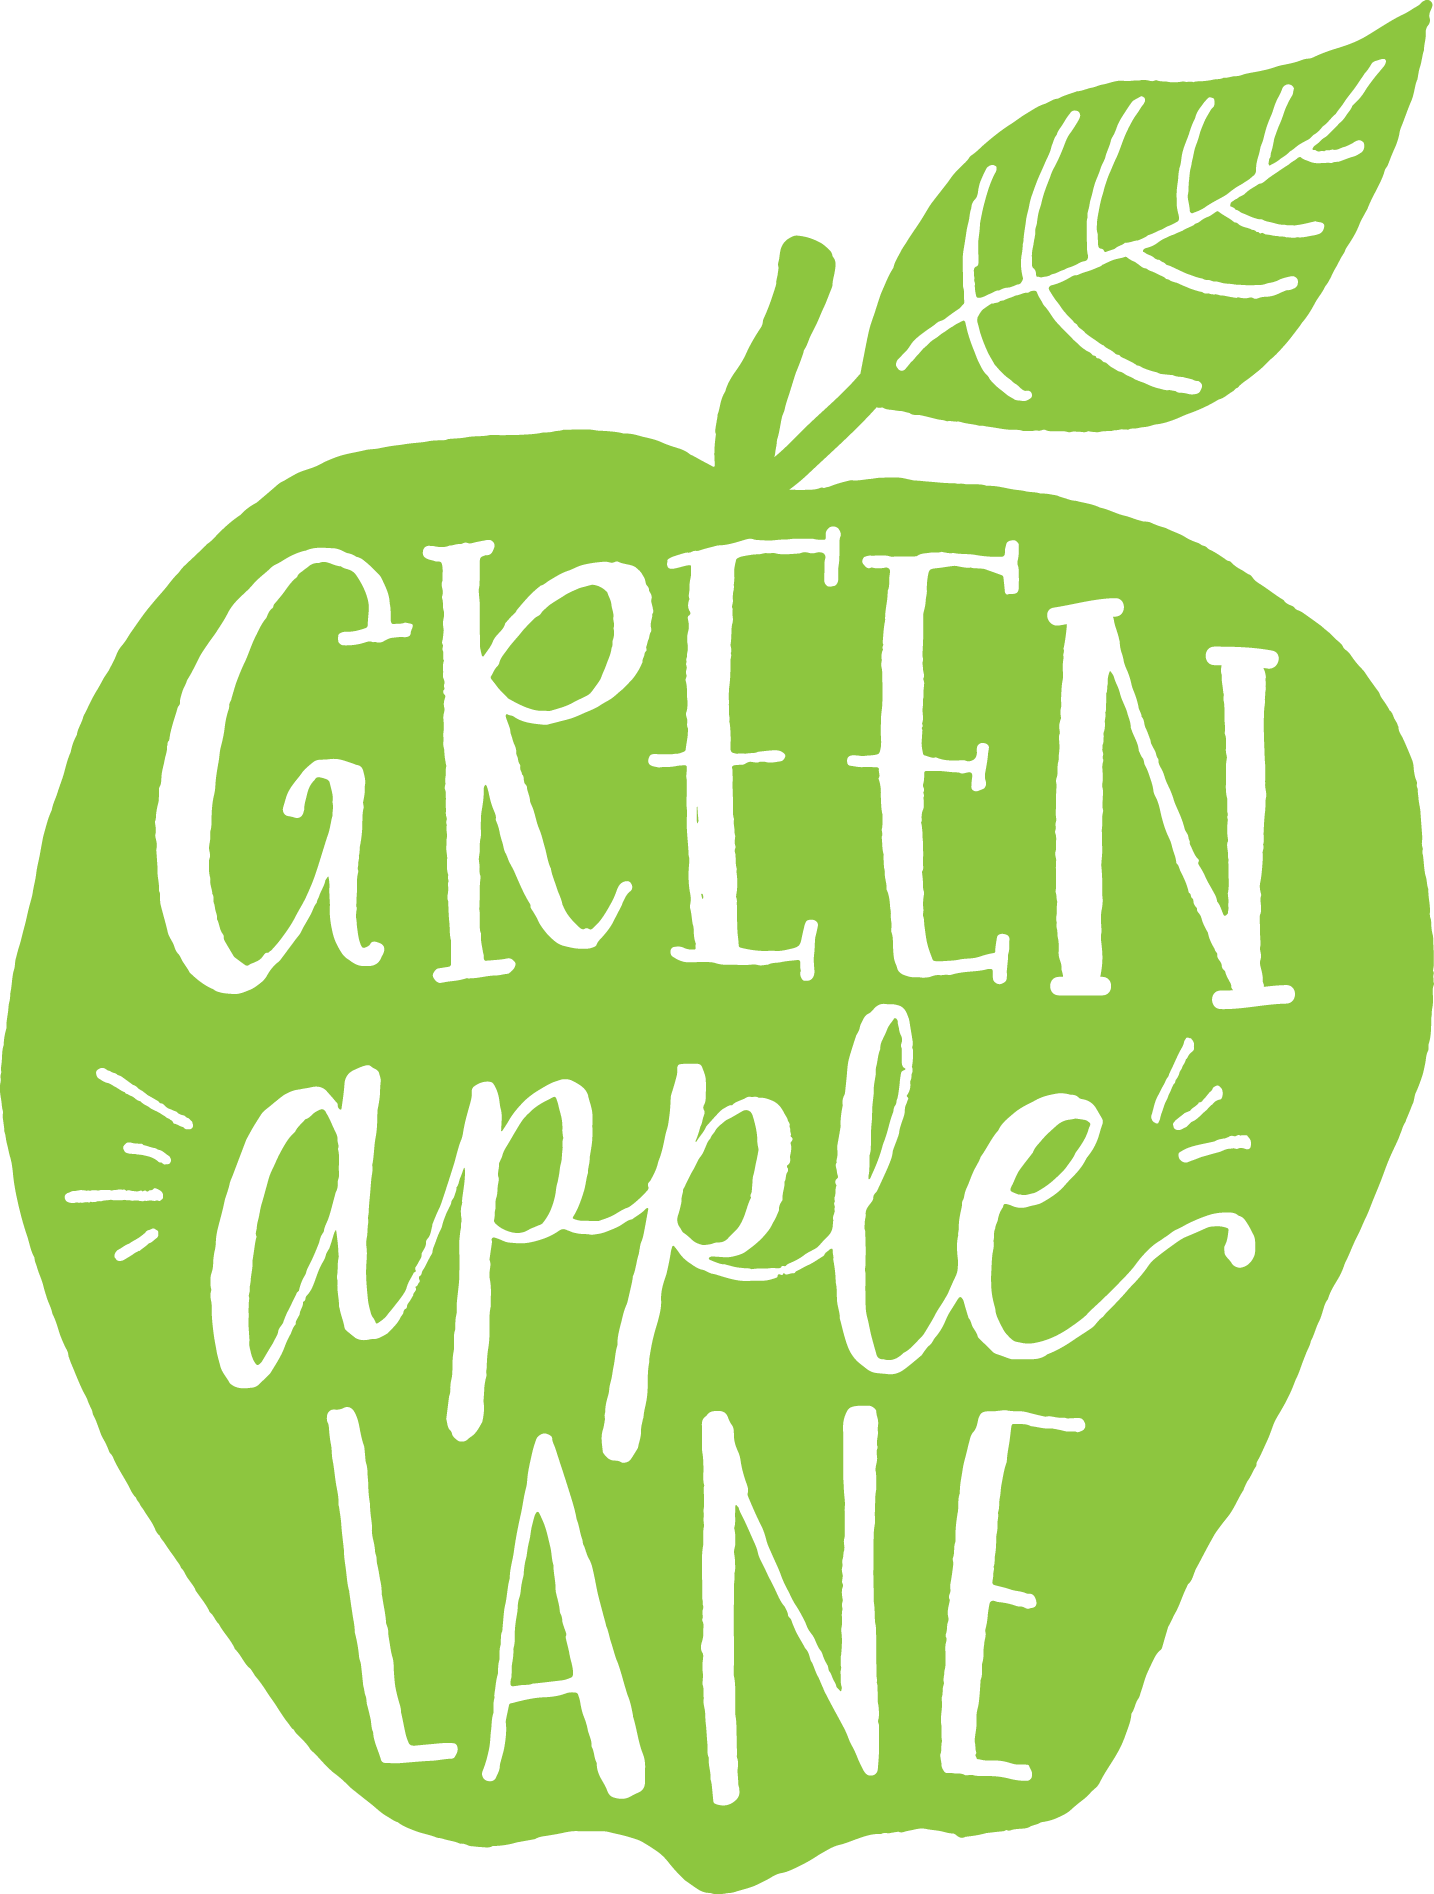 Green Apple Lane | Graphic Design Services for Businesses